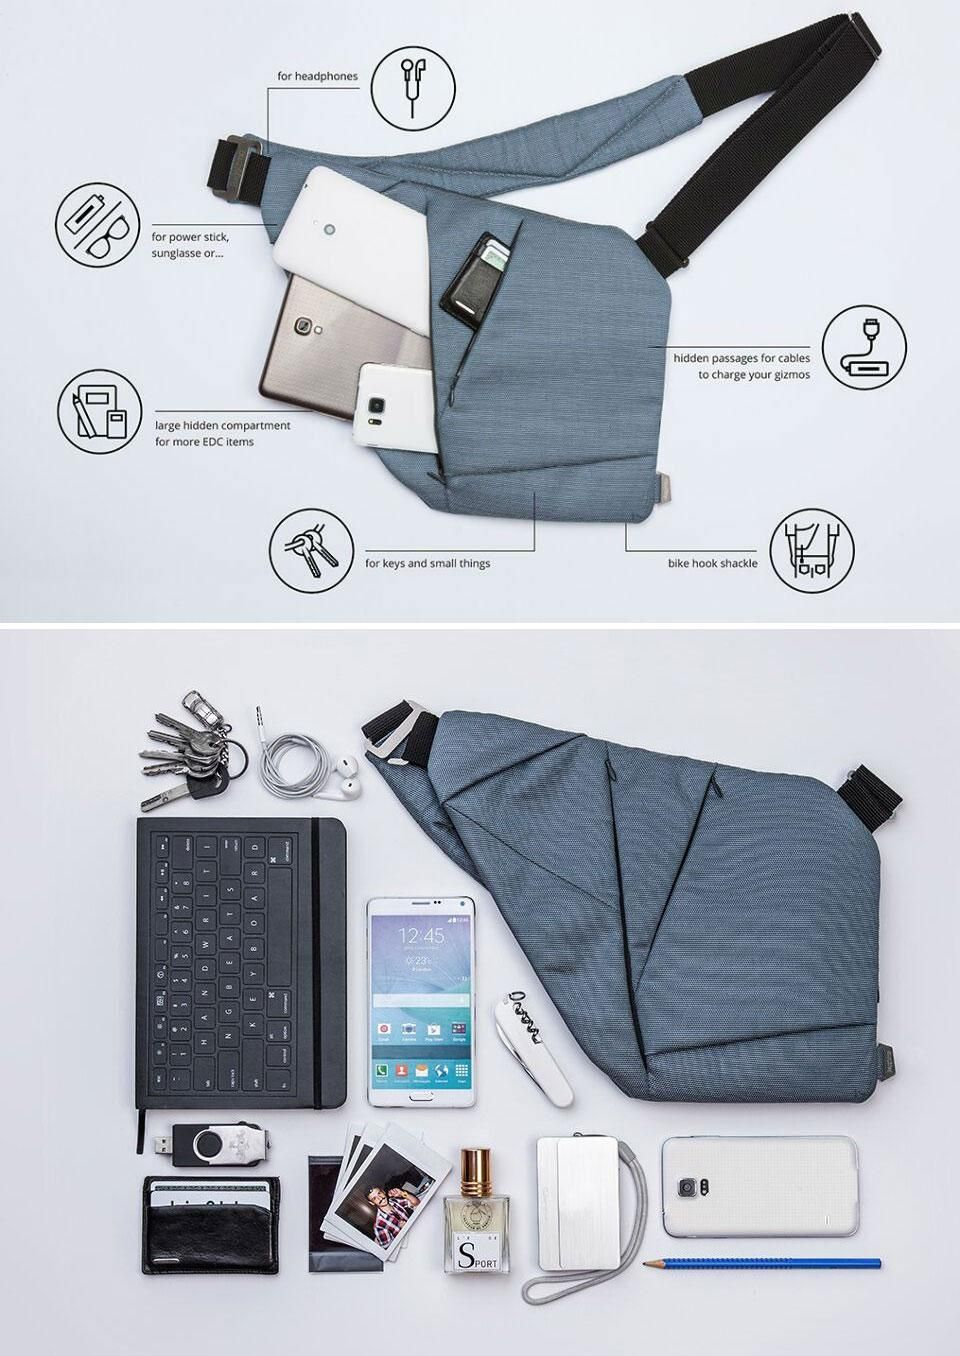 Baggizmo was designed to always stay slim, even when you stuff a lot of gadgets into it.